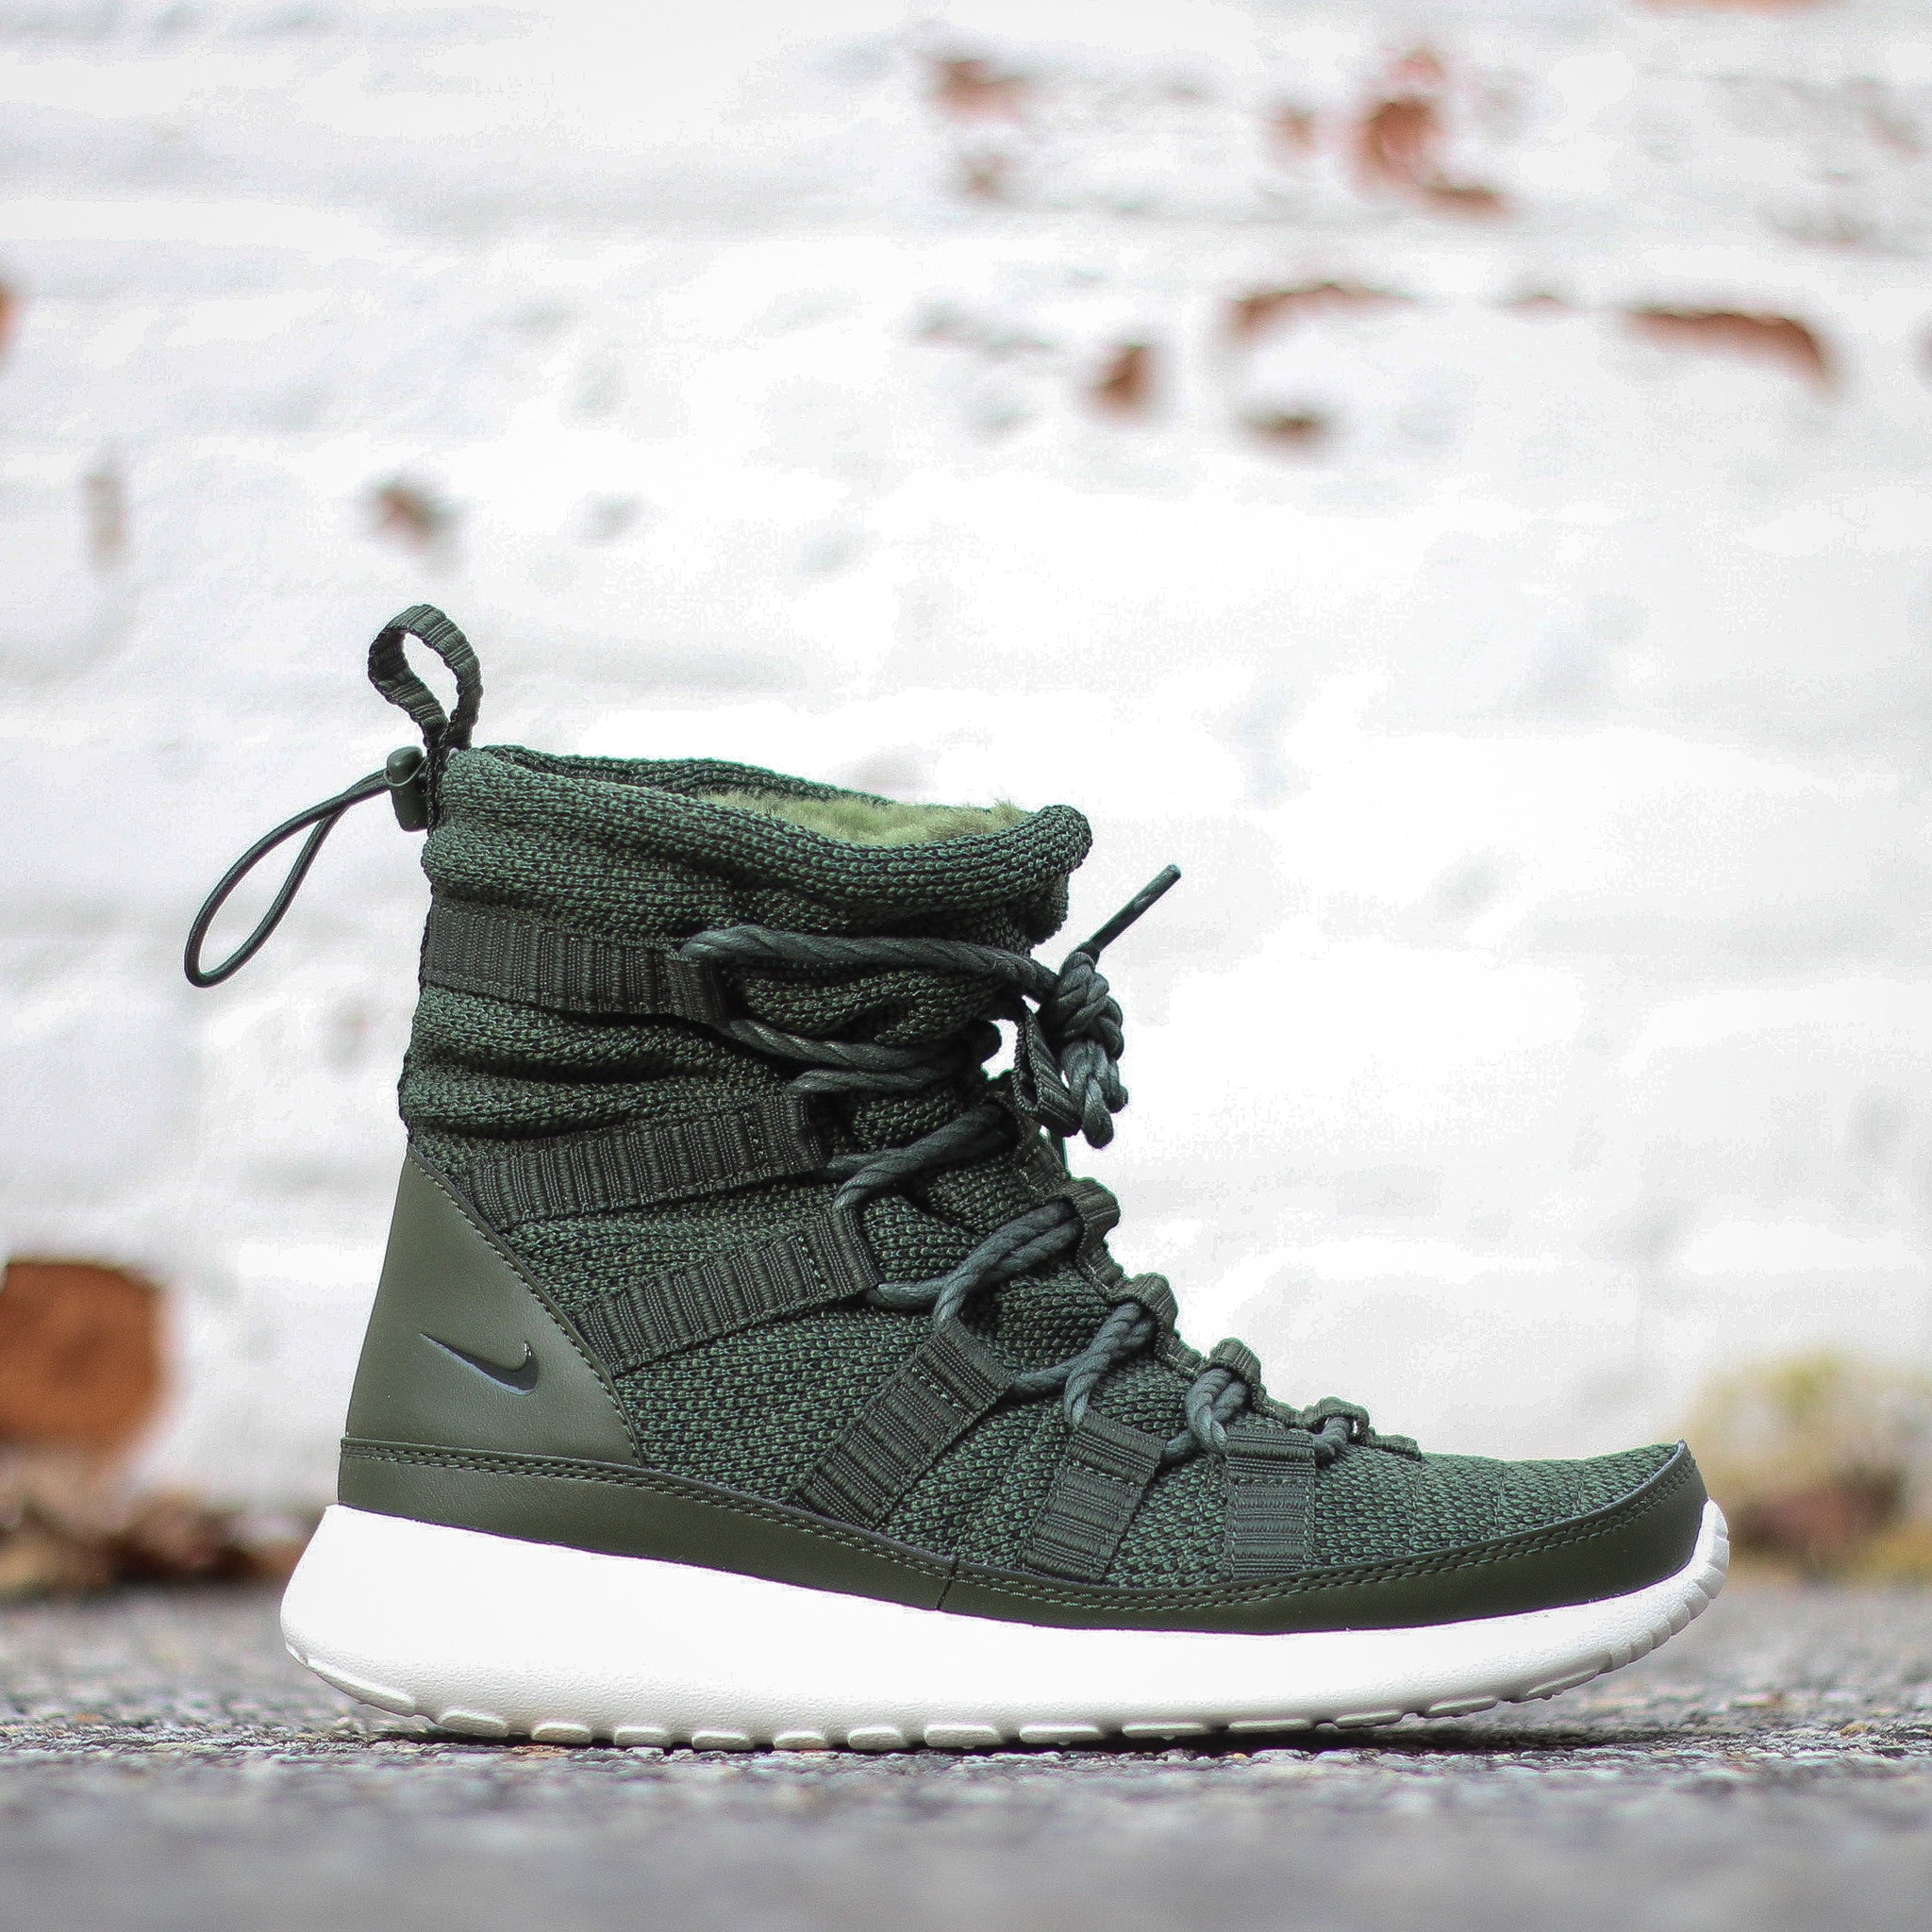 Archive | Nike Women's Roshe Run High SneakerBoot